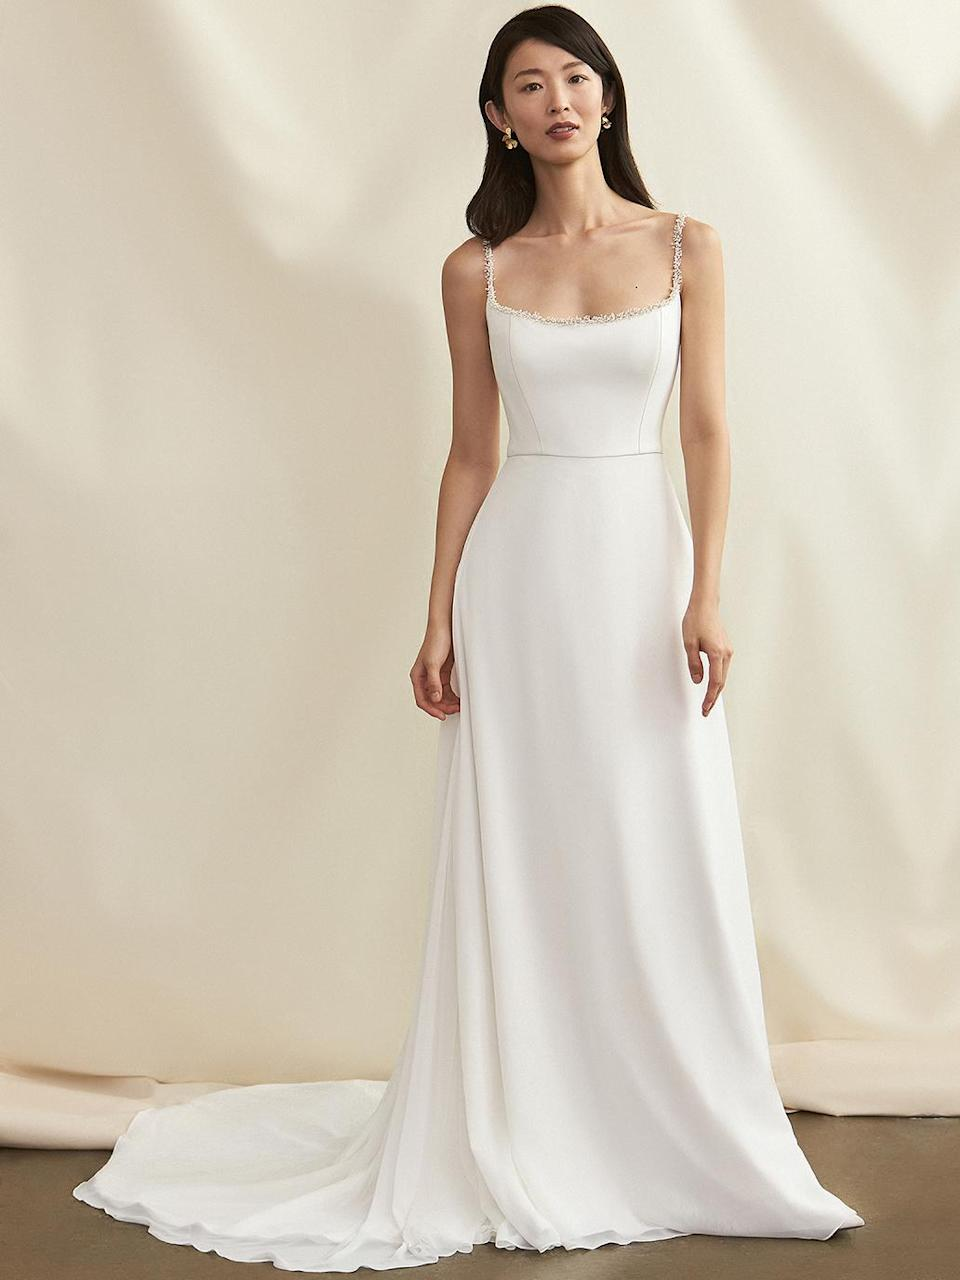 "<p>When searching for the <a href=""https://www.marthastewart.com/620630/dresses-style"" rel=""nofollow noopener"" target=""_blank"" data-ylk=""slk:perfect wedding dress"" class=""link rapid-noclick-resp"">perfect wedding dress</a>, many brides-to-be will use the word ""elegant"" to describe their ideal look. Luckily, that's exactly what Savannah Miller puts forth with her brand-new fall and winter 2021 wedding dress collection, dubbed the Lady of the Lake. This collection of gowns features the understated and elegant style we've come to expect from the bridal house's signatures collections, but with additional inspiration from ancient British medieval mythology. The designer, Savannah Miller, created her eponymous label back in 2016 after working with Alexander McQueen and Matthew Williamson. Taking her knowledge from those fashion trailblazers and her own expertise in elevated bohemian design, she is continuing to forge ahead with her own <a href=""https://www.marthastewart.com/7859258/why-are-wedding-dresses-expensive"" rel=""nofollow noopener"" target=""_blank"" data-ylk=""slk:breathtaking gowns"" class=""link rapid-noclick-resp"">breathtaking gowns</a> that can fit any bride's taste.</p> <p>For this specific collection, Miller wanted to connect to the needs of <a href=""https://www.marthastewart.com/7957398/colorful-celebrity-wedding-dresses"" rel=""nofollow noopener"" target=""_blank"" data-ylk=""slk:today's bride"" class=""link rapid-noclick-resp"">today's bride</a>. ""In these uncertain times it felt important to me to infuse my collection with this energy and spirit to make my brides feel like goddesses no matter how many challenges they may be facing with their wedding arrangements,"" she shared in a statement. ""I have continued to develop the more structured side of my <a href=""https://www.marthastewart.com/600319/fashion"" rel=""nofollow noopener"" target=""_blank"" data-ylk=""slk:design aesthetic"" class=""link rapid-noclick-resp"">design aesthetic</a> to bring corsetry into the realms of comfort and elegance while maintaining the modern and understated and fashion-forward lines so synonymous with the brand.""</p> <p>This means making sure that every design is comfortable, beautiful, and contains the brand's signature <a href=""https://www.marthastewart.com/600307/bridal-fashion-shows"" rel=""nofollow noopener"" target=""_blank"" data-ylk=""slk:timeless appeal"" class=""link rapid-noclick-resp"">timeless appeal</a>. Some of the collection's most memorable features? The designer worked with contemporary lace and also 3D beading designs to give a more feminine feel to some of her structured and <a href=""https://www.marthastewart.com/7945794/wedding-dress-stain-tips-immediately-after-quick-fixes"" rel=""nofollow noopener"" target=""_blank"" data-ylk=""slk:simple gowns"" class=""link rapid-noclick-resp"">simple gowns</a>.</p> <p>Here, find the Savannah Miller Fall and Winter 2021 collection, which is meant to embody the spirit of the fashion-forward bride.</p>"